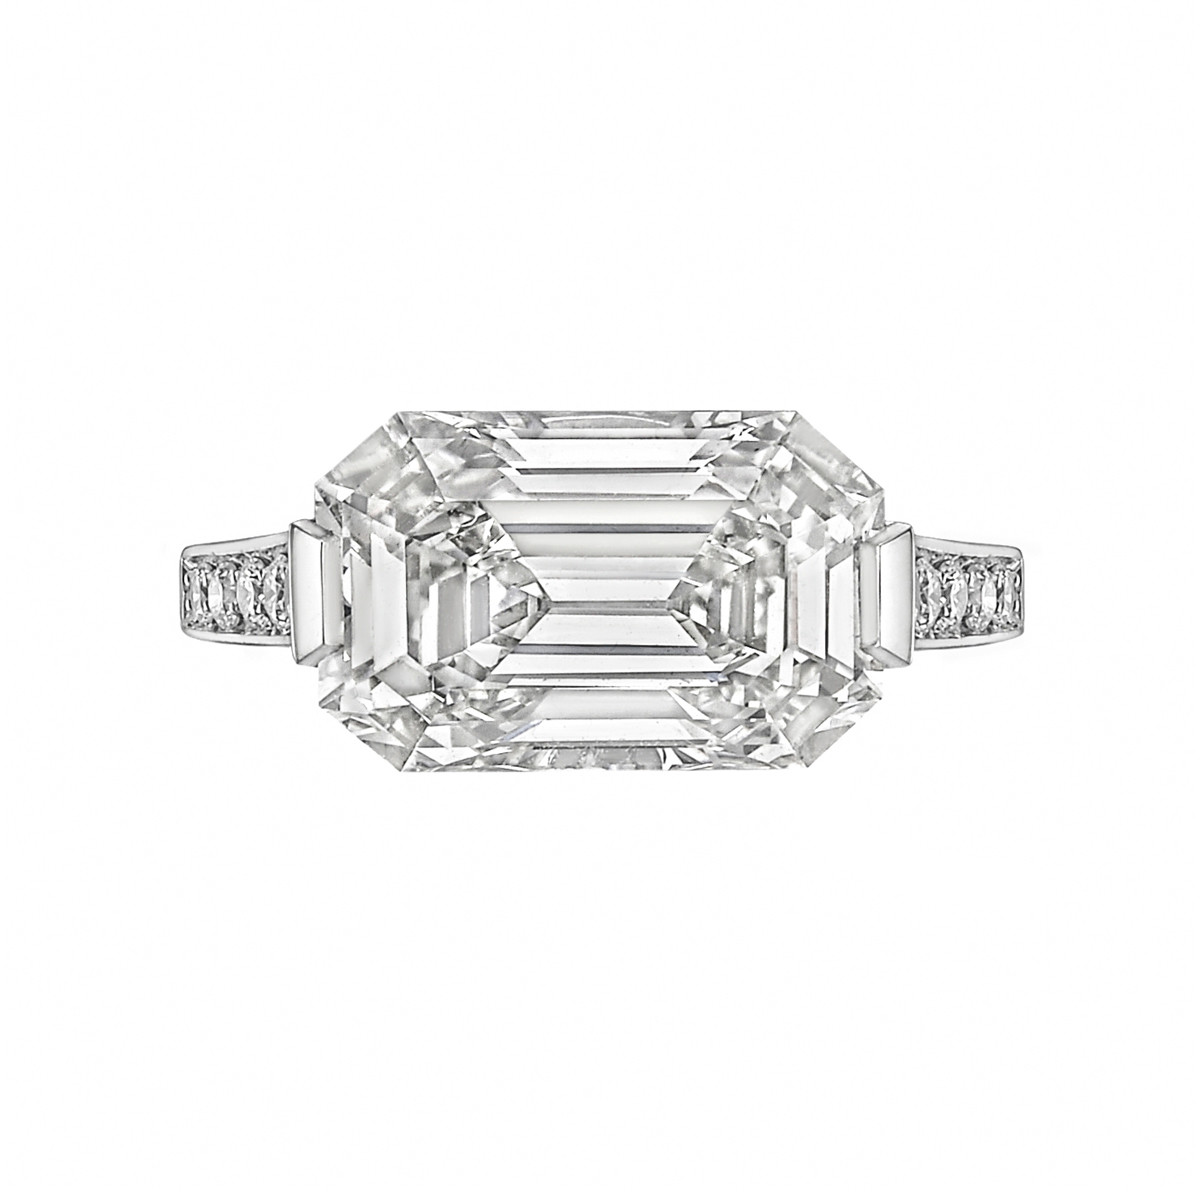 5.15 Carat Emerald-Cut Diamond Ring